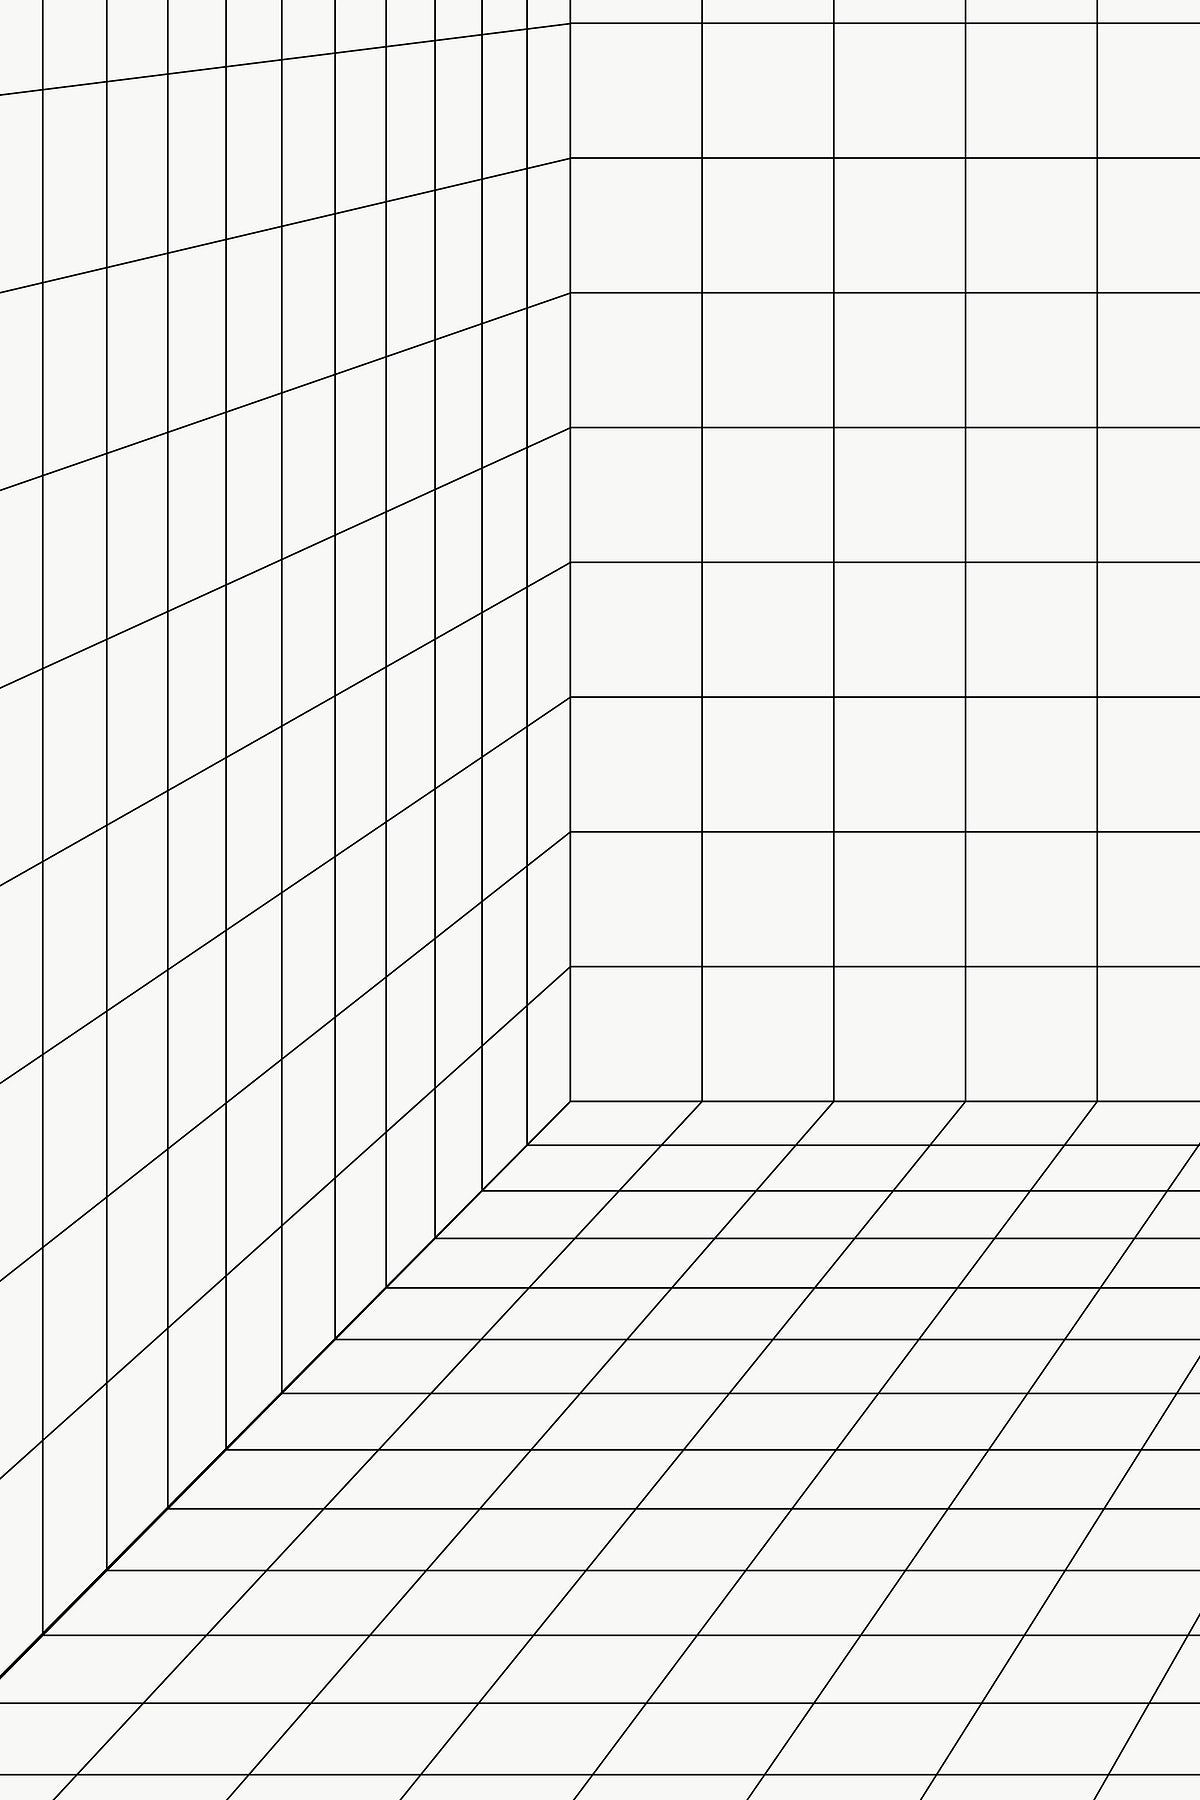 3d Grid Wireframe Grid Room Background Design Element Free Image By Rawpixel Com Aew Background Design Wireframe Design Element